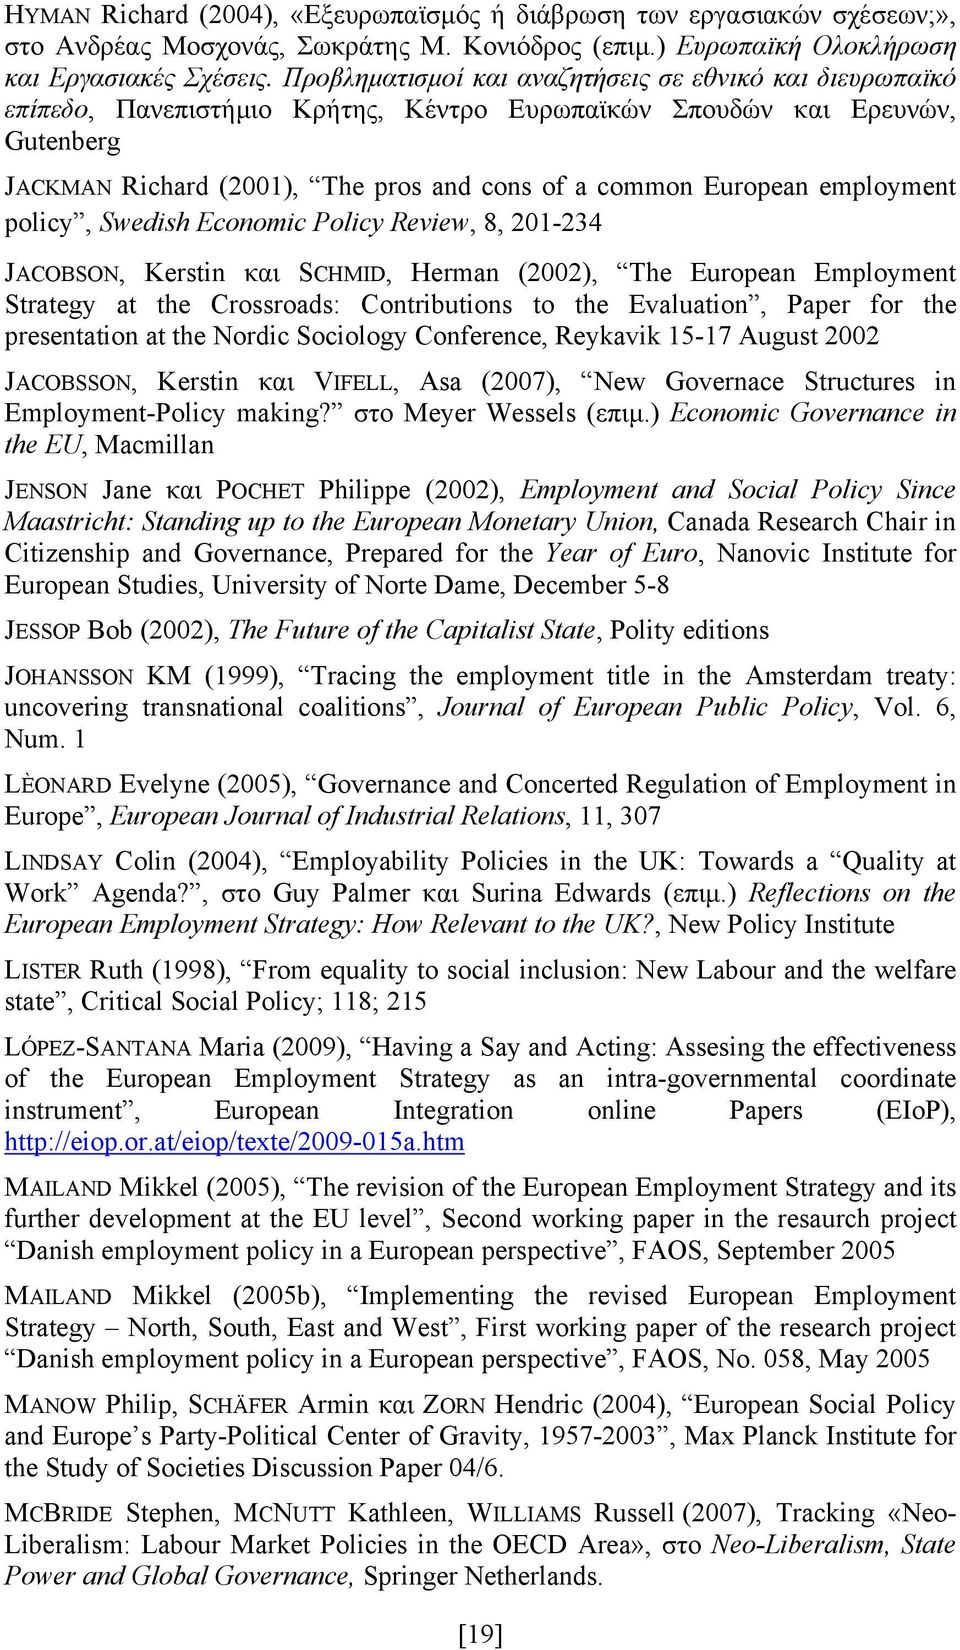 employment policy, Swedish Economic Policy Review, 8, 201-234 JACOBSON, Kerstin και SCHMID, Herman (2002), The European Employment Strategy at the Crossroads: Contributions to the Evaluation, Paper